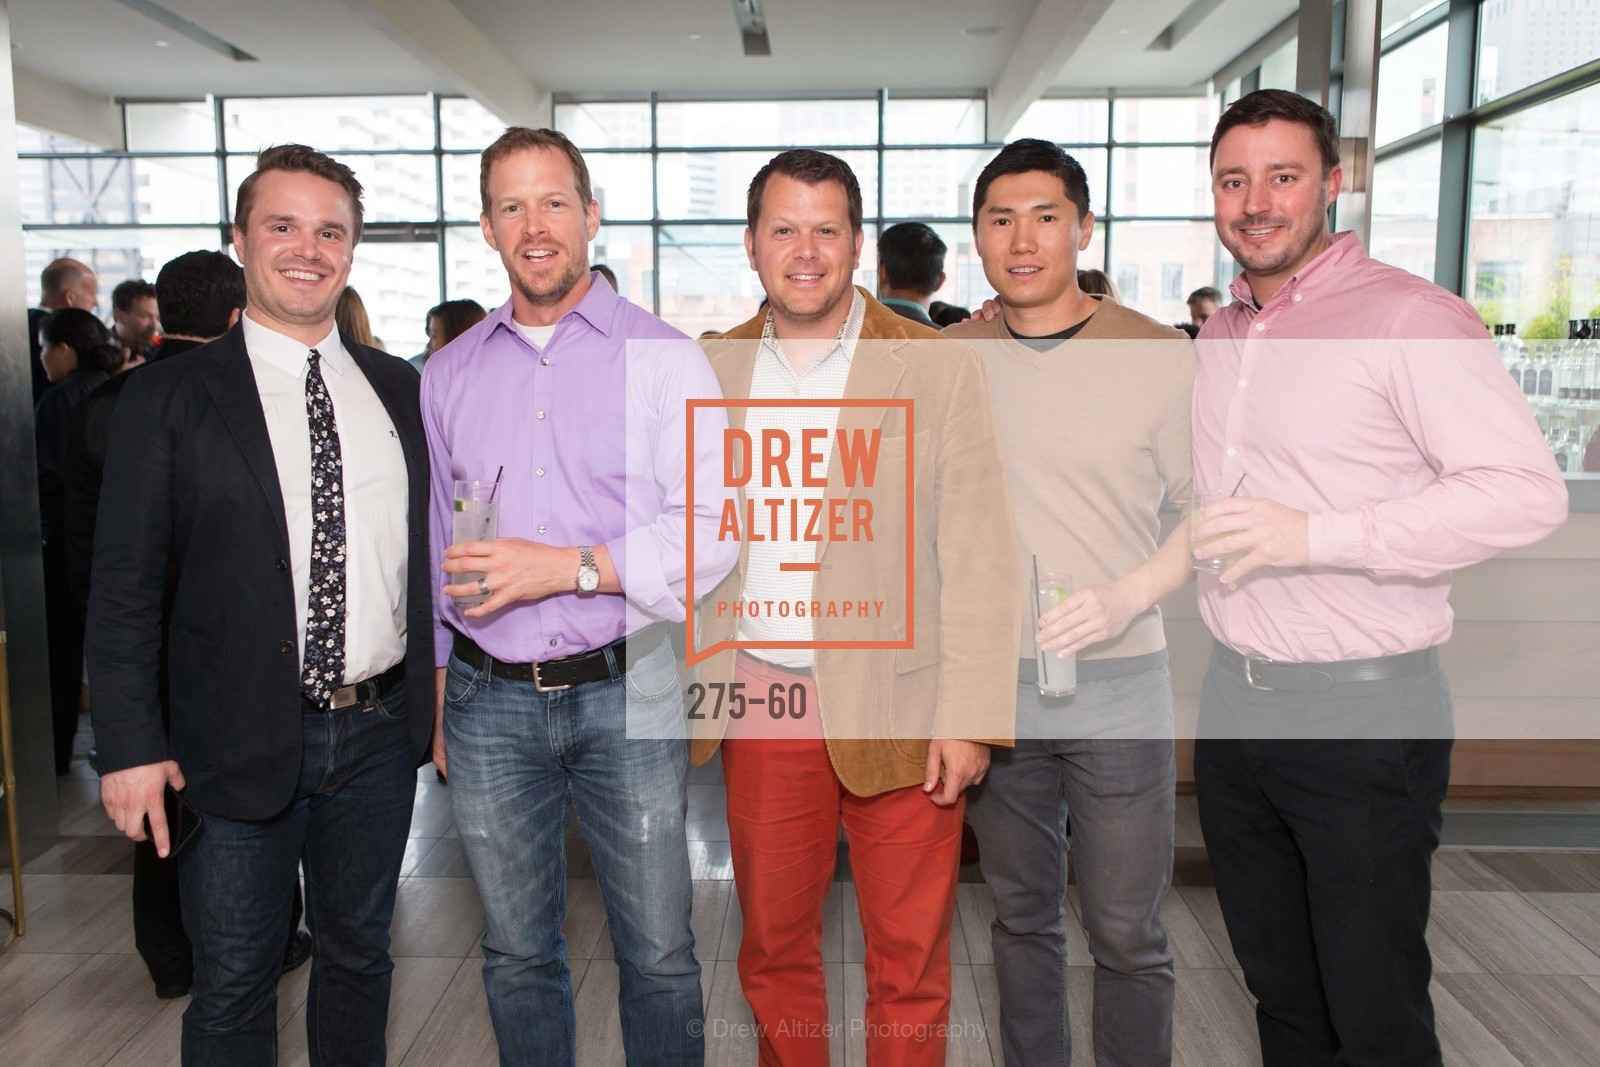 Michael Krueger, John McNulty, David Luntz, Randy Sun, Devon Griswall, MR PORTER Celebrate The San Francisco Issue of The Journal, The Battery Rooftop - The Battery SF, April 23rd, 2015,Drew Altizer, Drew Altizer Photography, full-service agency, private events, San Francisco photographer, photographer california